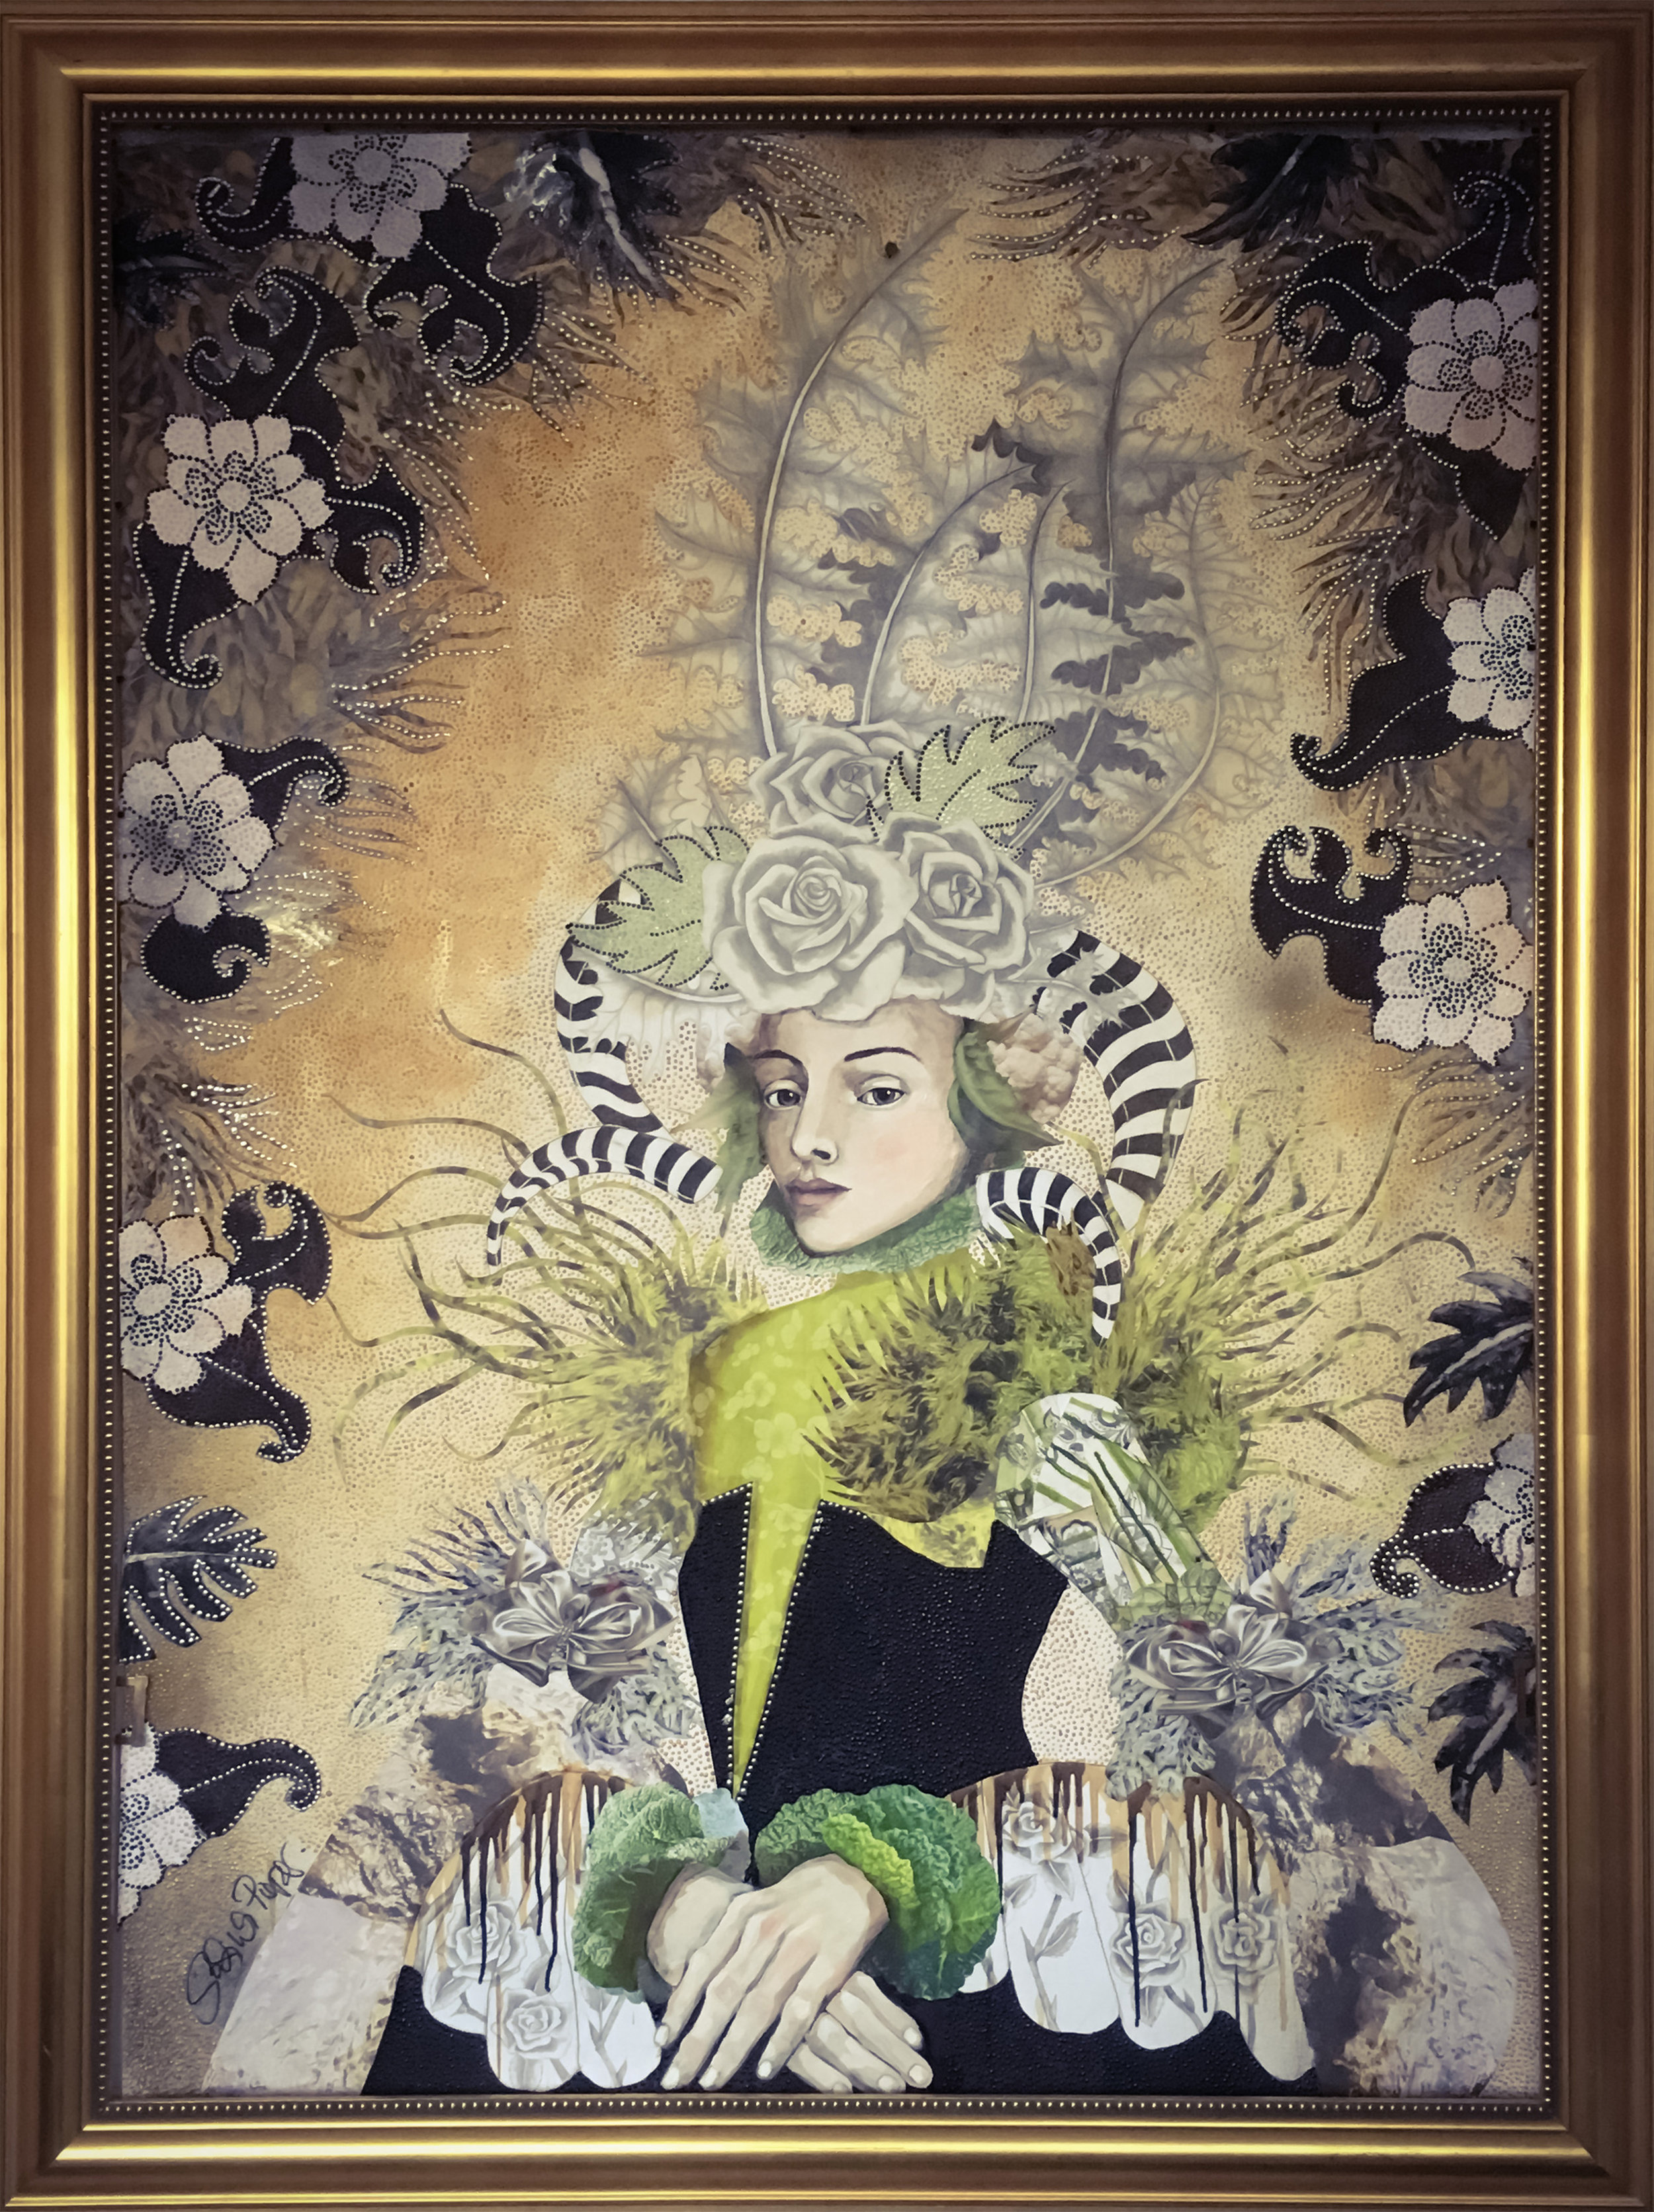 Sabina Pieper : Lady Ramure, 160 cm x 120 cm, orignal collage and painting